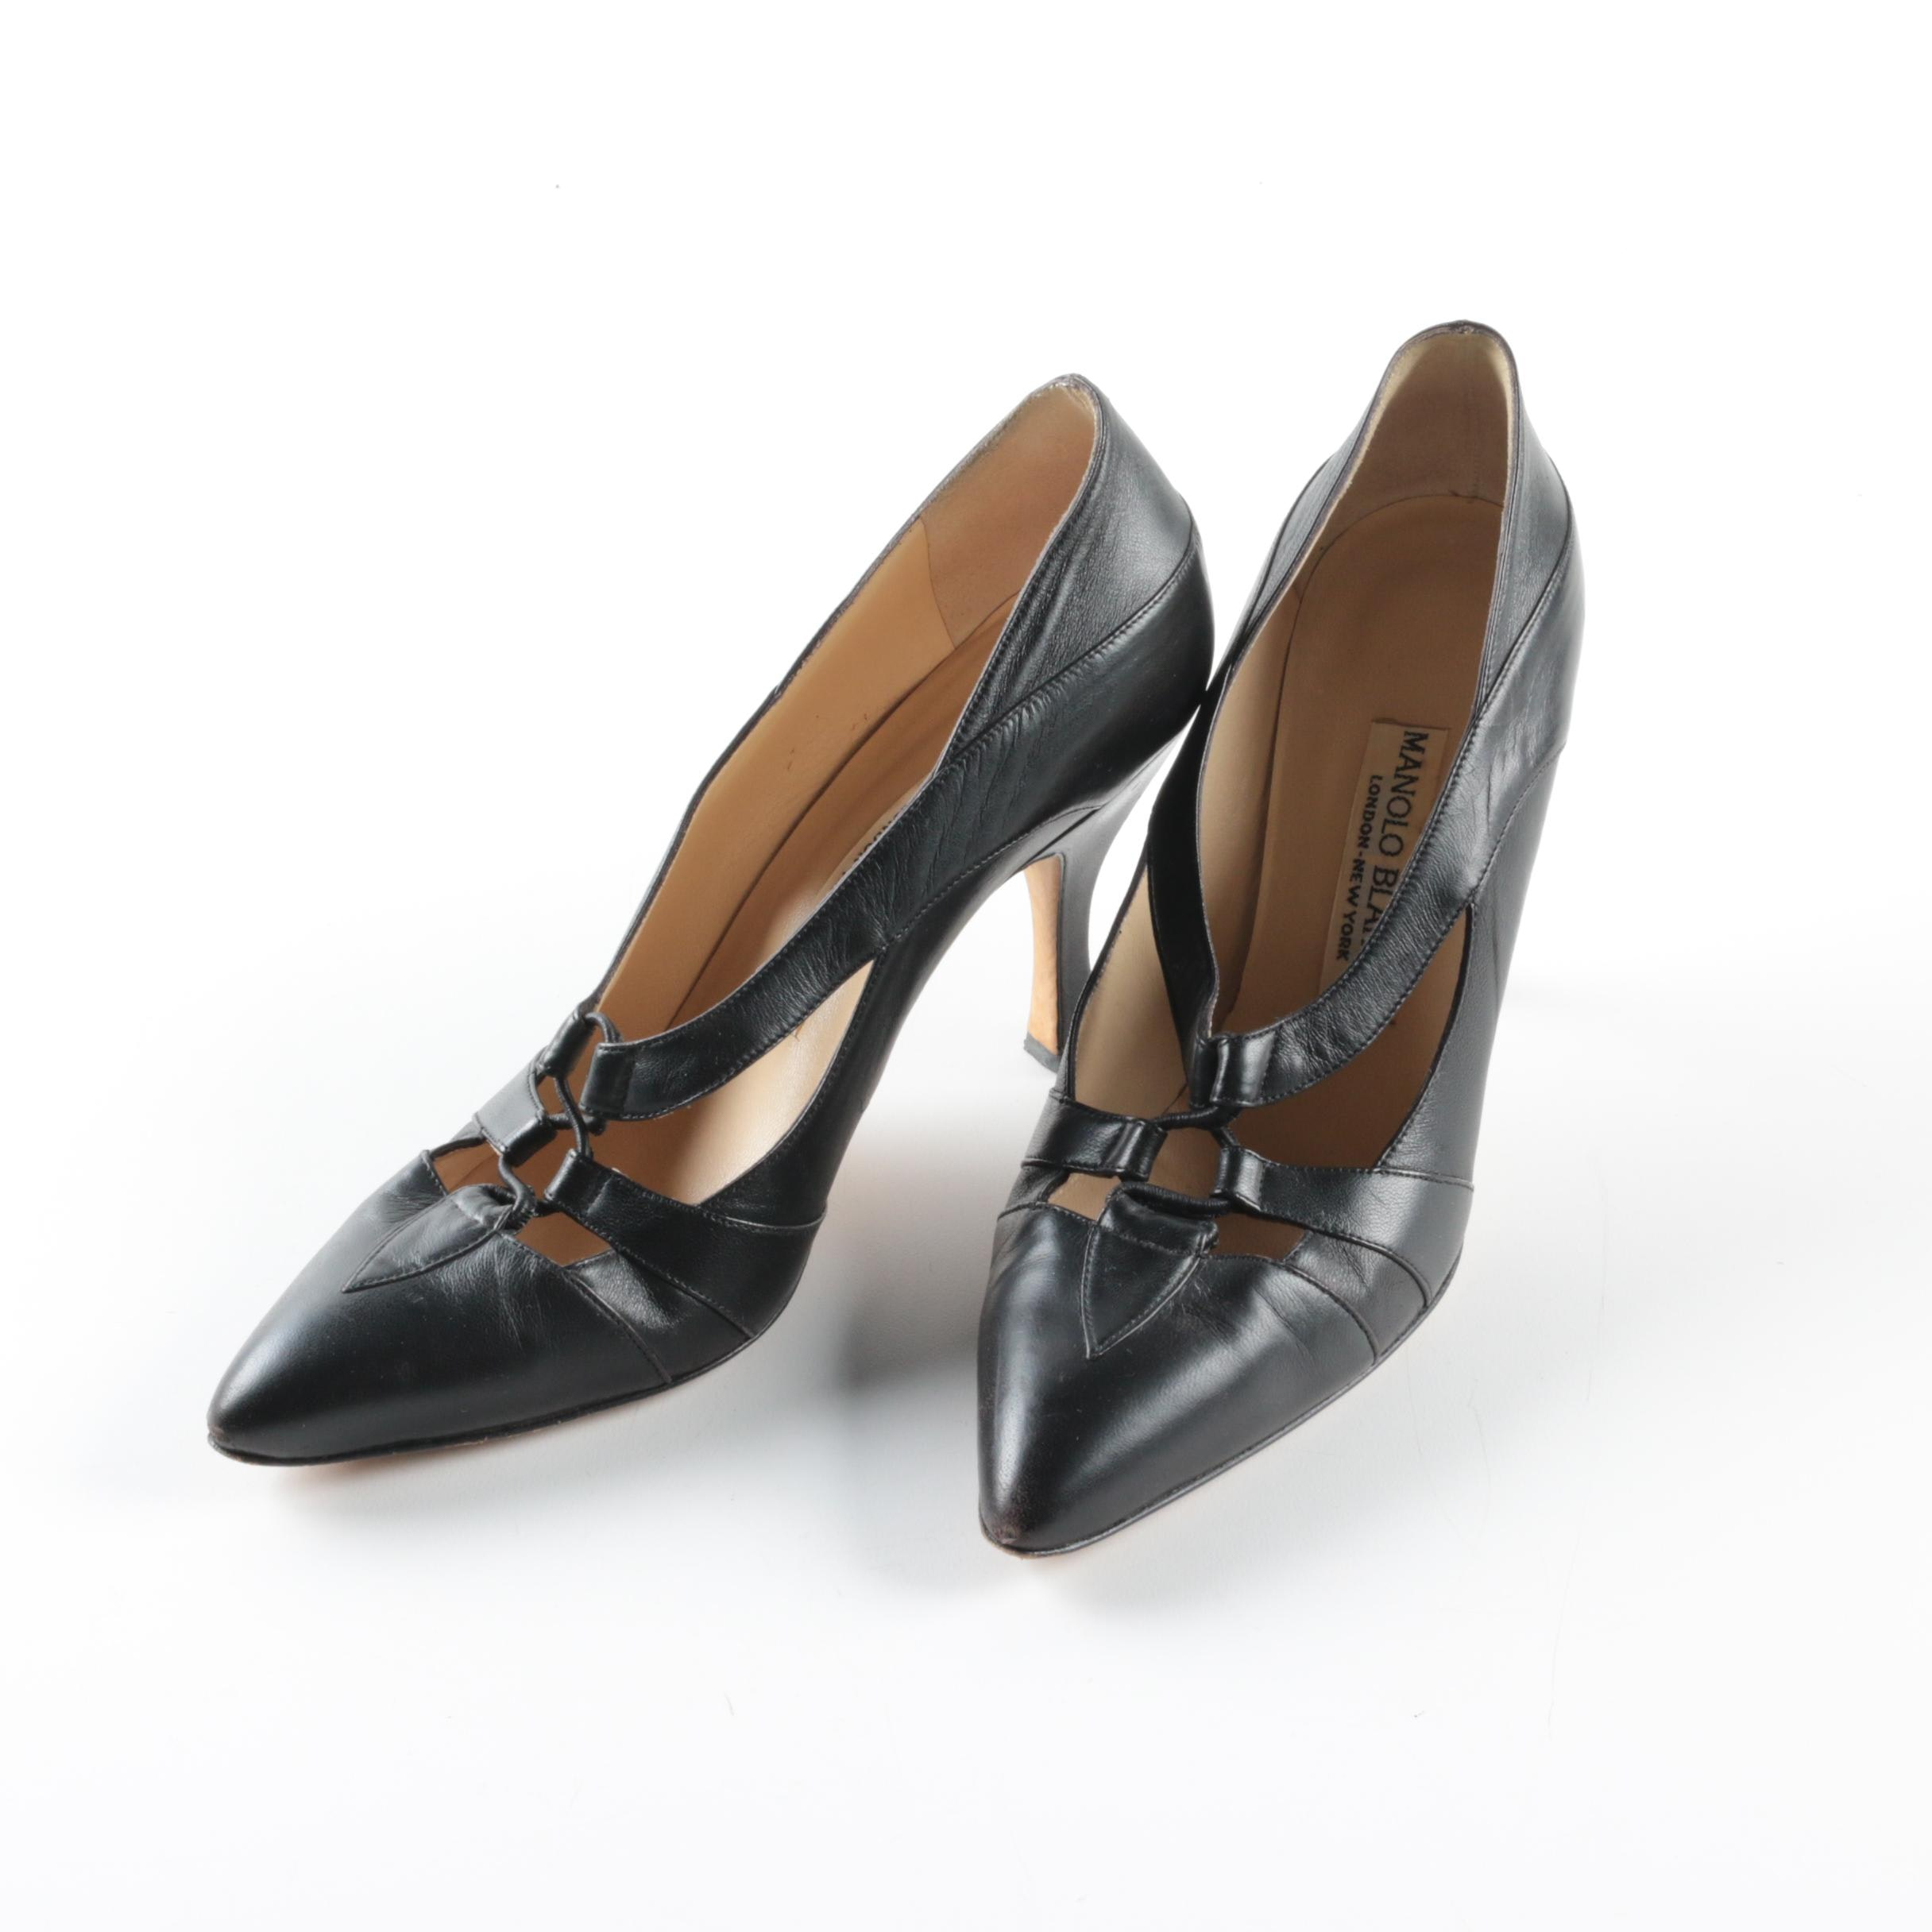 Manolo Blahnik Black Leather High-Heeled Shoes